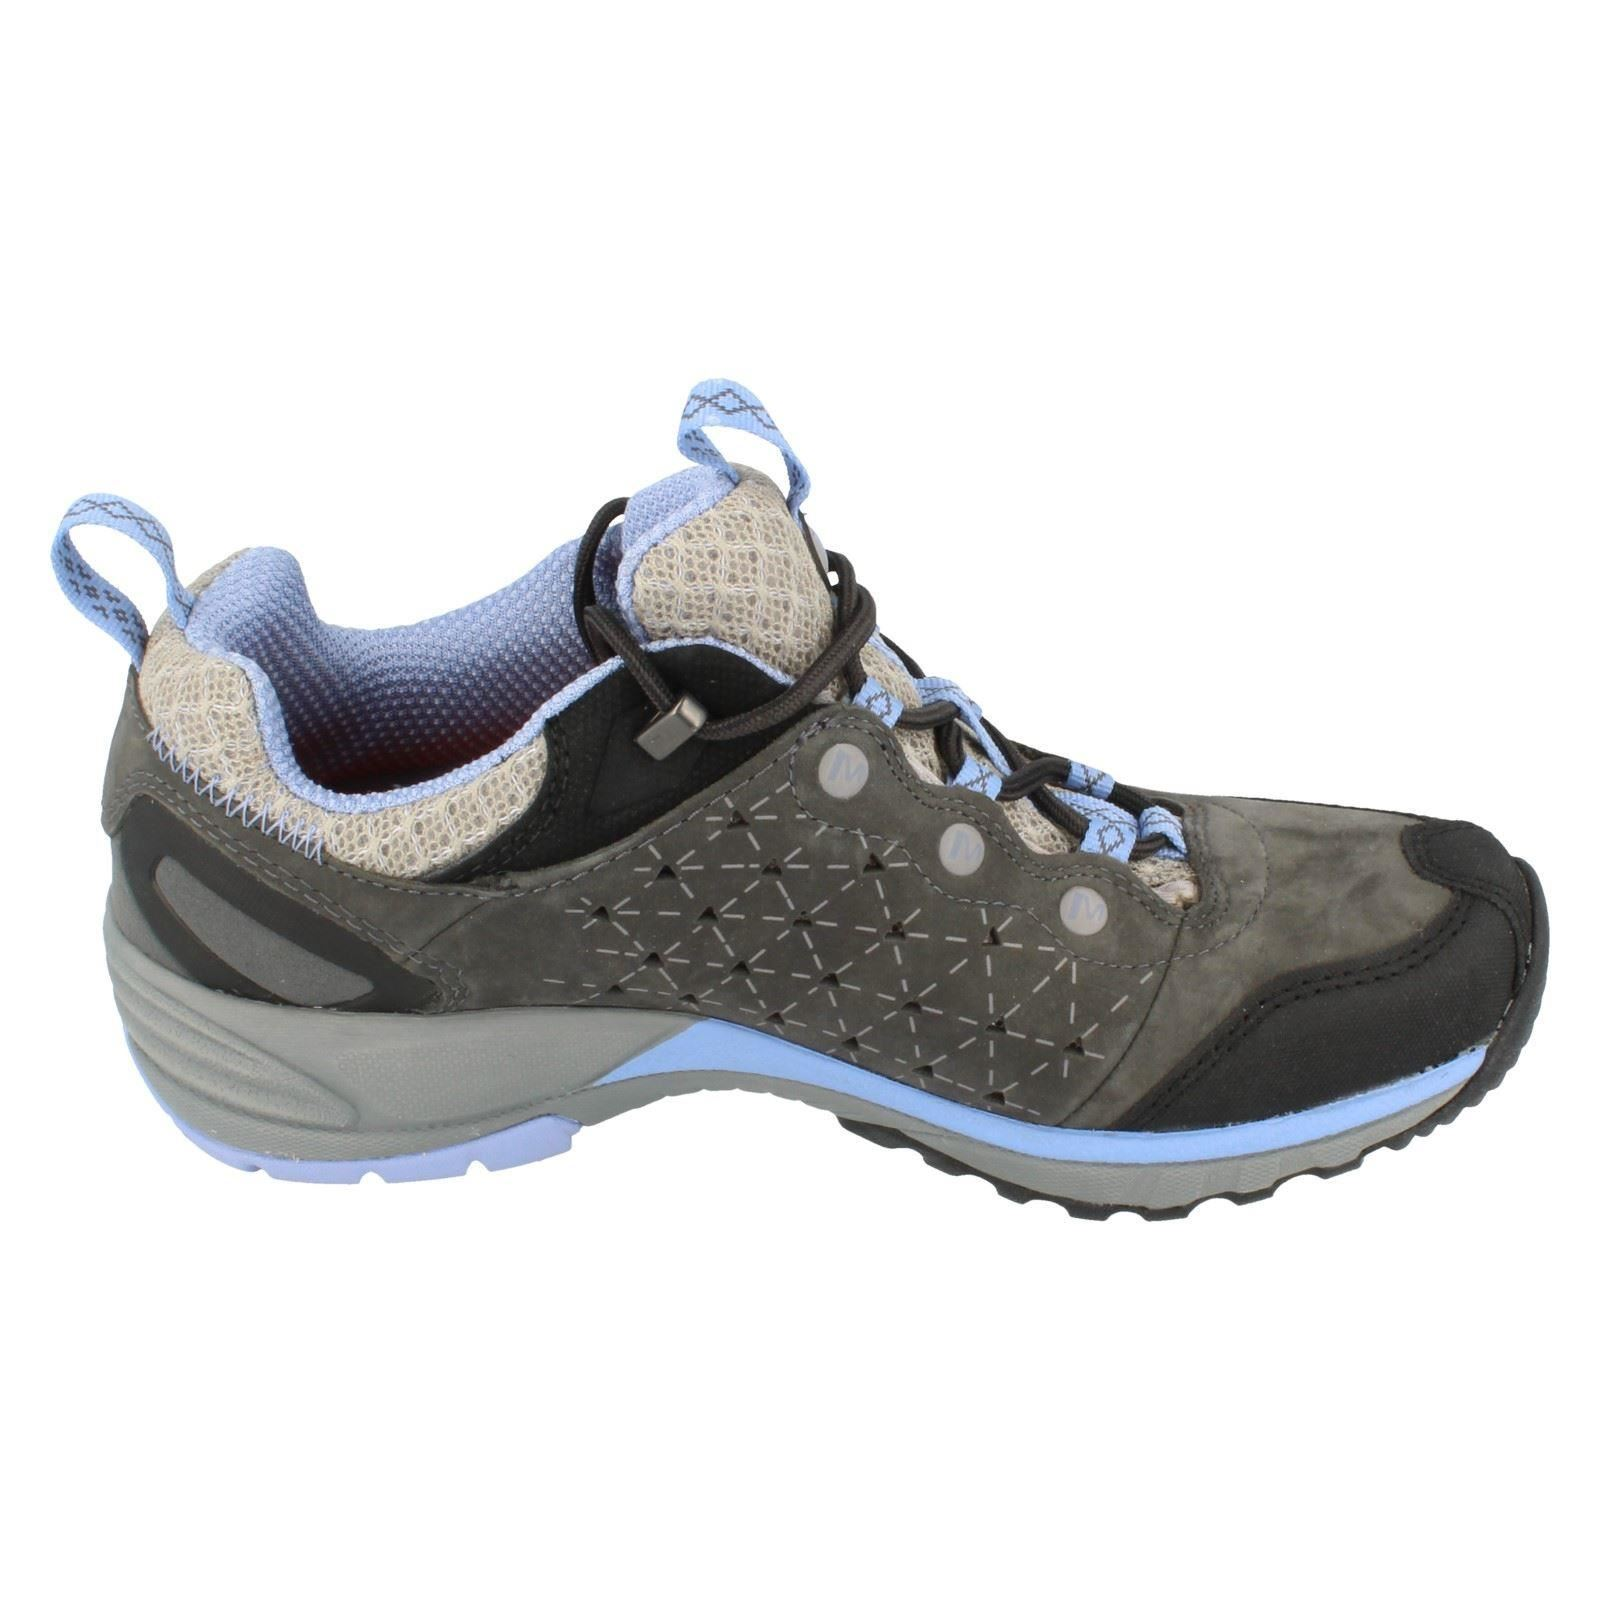 grigio J16700 Merrell Up Ladies Light Avian Shadow Trainers Dark Lace zx6nqRFn